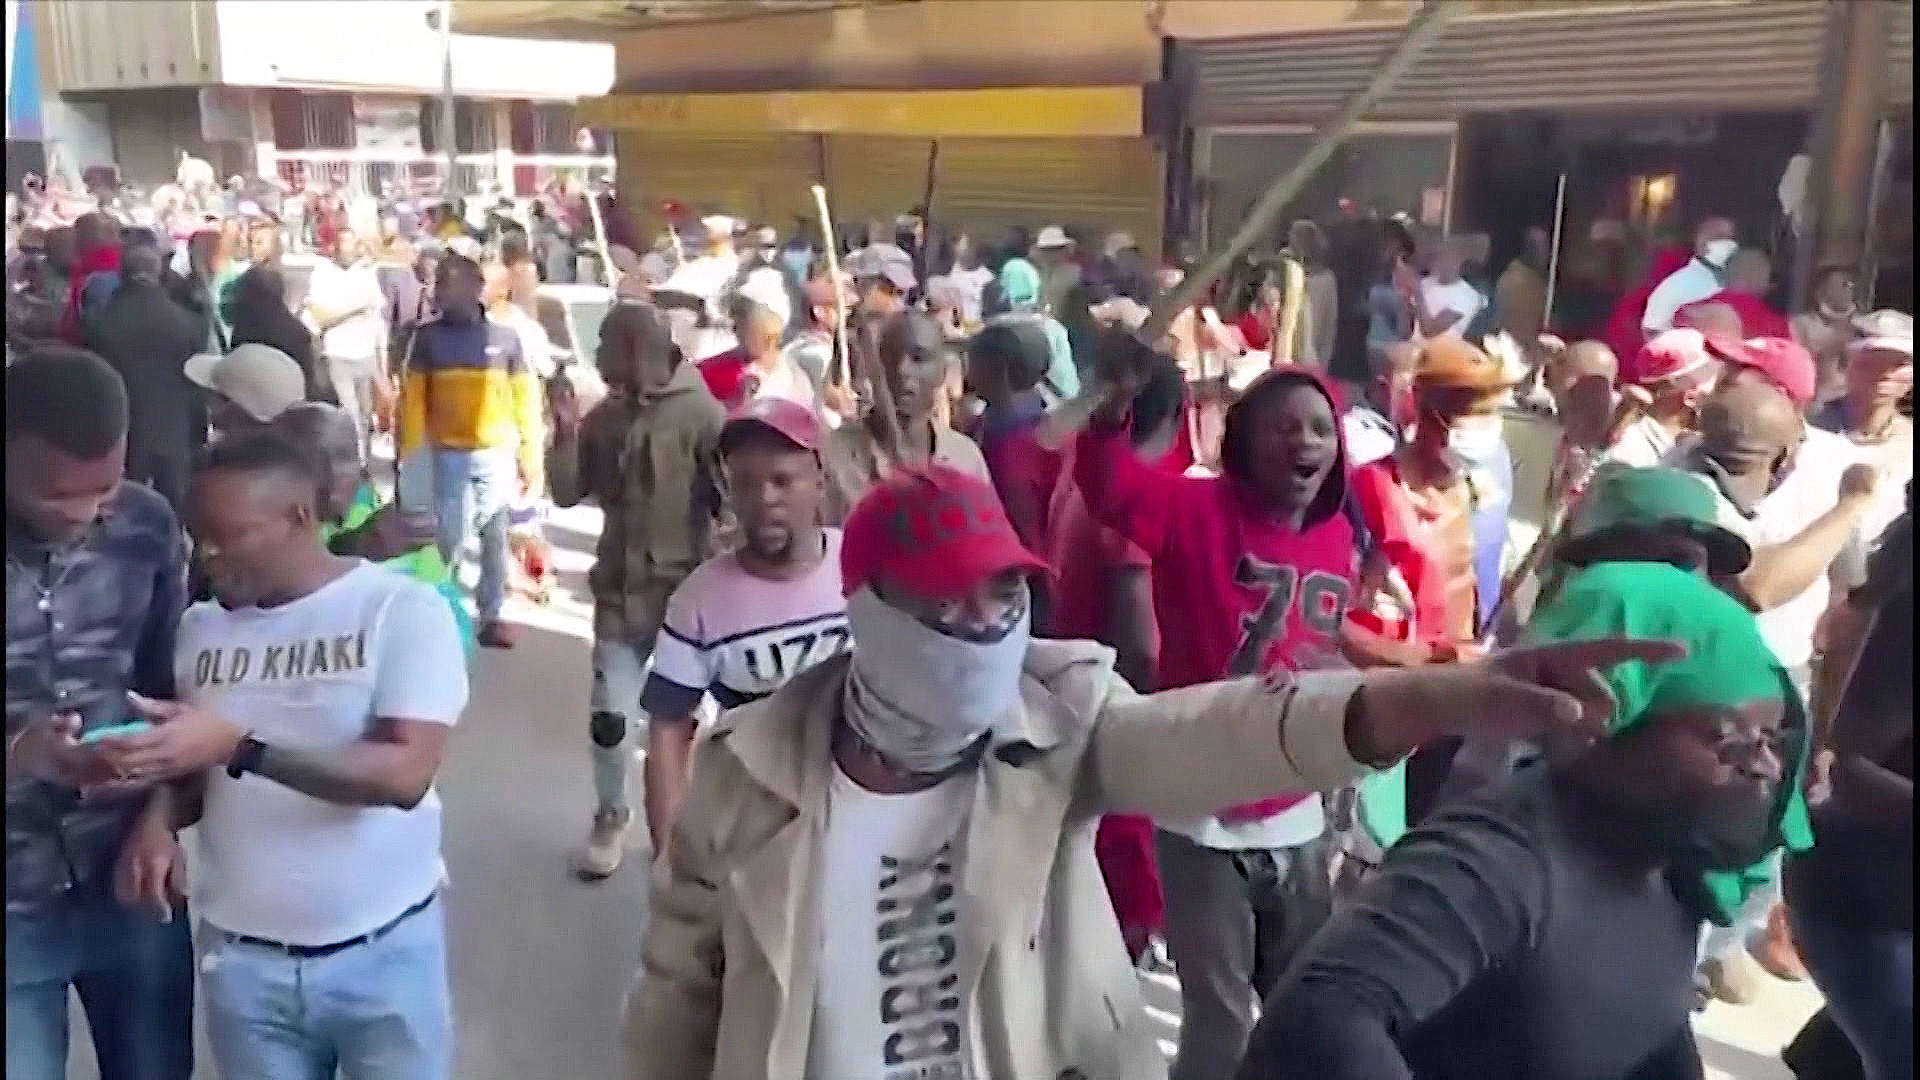 """Read more about the article """"Perfect Storm"""" of Pandemic, Poverty & Jailing Ex-President Unleashes Mass Protest in South Africa"""